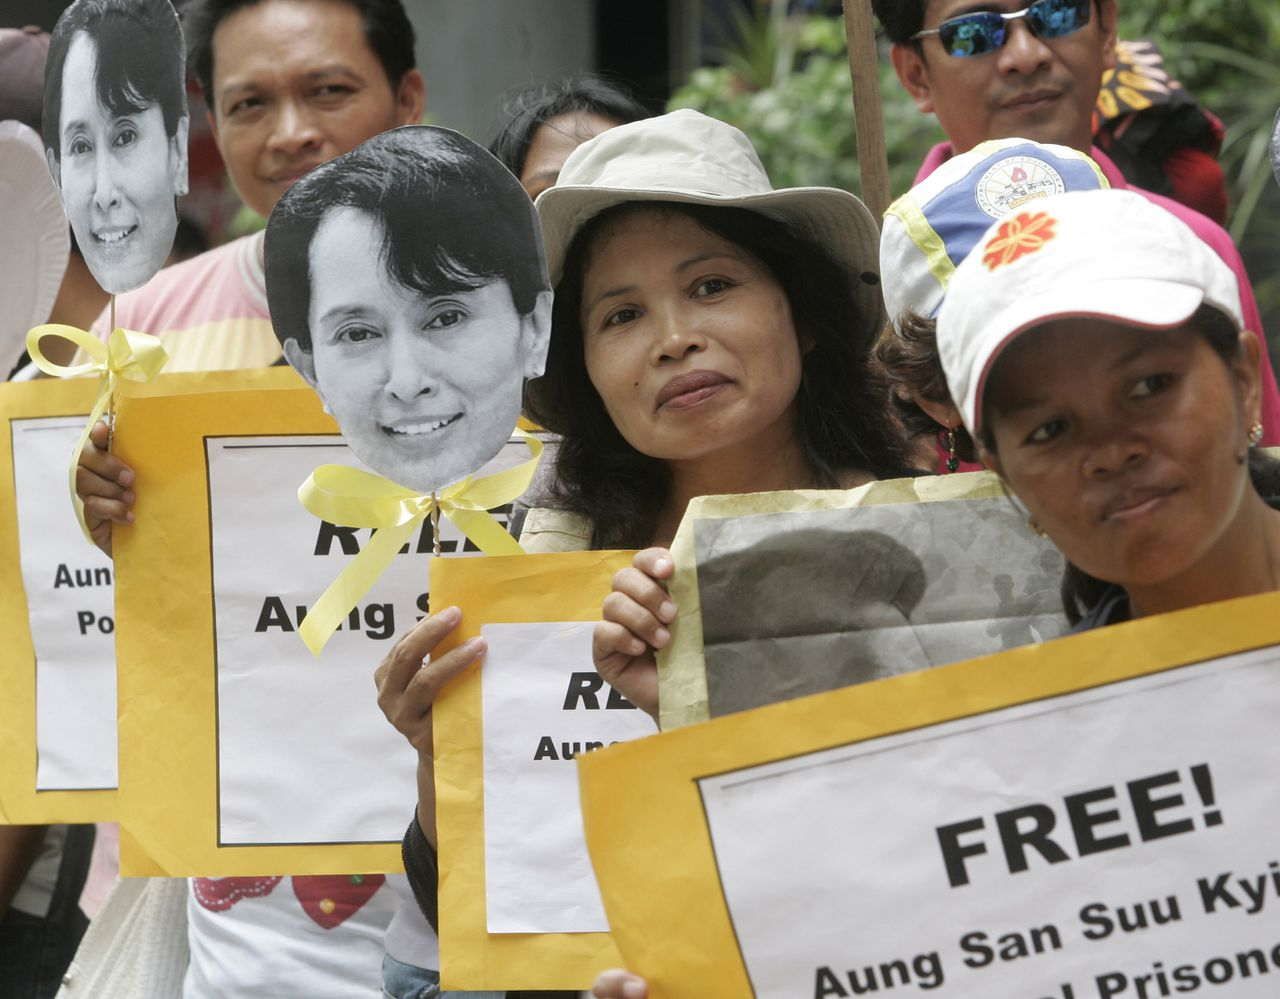 Demonstranten vanochtend voor de Birmese ambassade in de Filippijnse hoofdstad Manila. Foto AP Protesters display placards and portraits of Myanmar opposition leader and Nobel Peace Prize laureate Aung San Suu Kyi during a protest at the Myanmar Embassy at Manila's financial district of Makati city as they await Burma's decision Tuesday Aug. 11, 2009 in the Philippines. The Myanmar court is scheduled to deliver a verdict in the high-profile trial of Suu Kyi Tuesday. (AP Photo/Bullit Marquez)